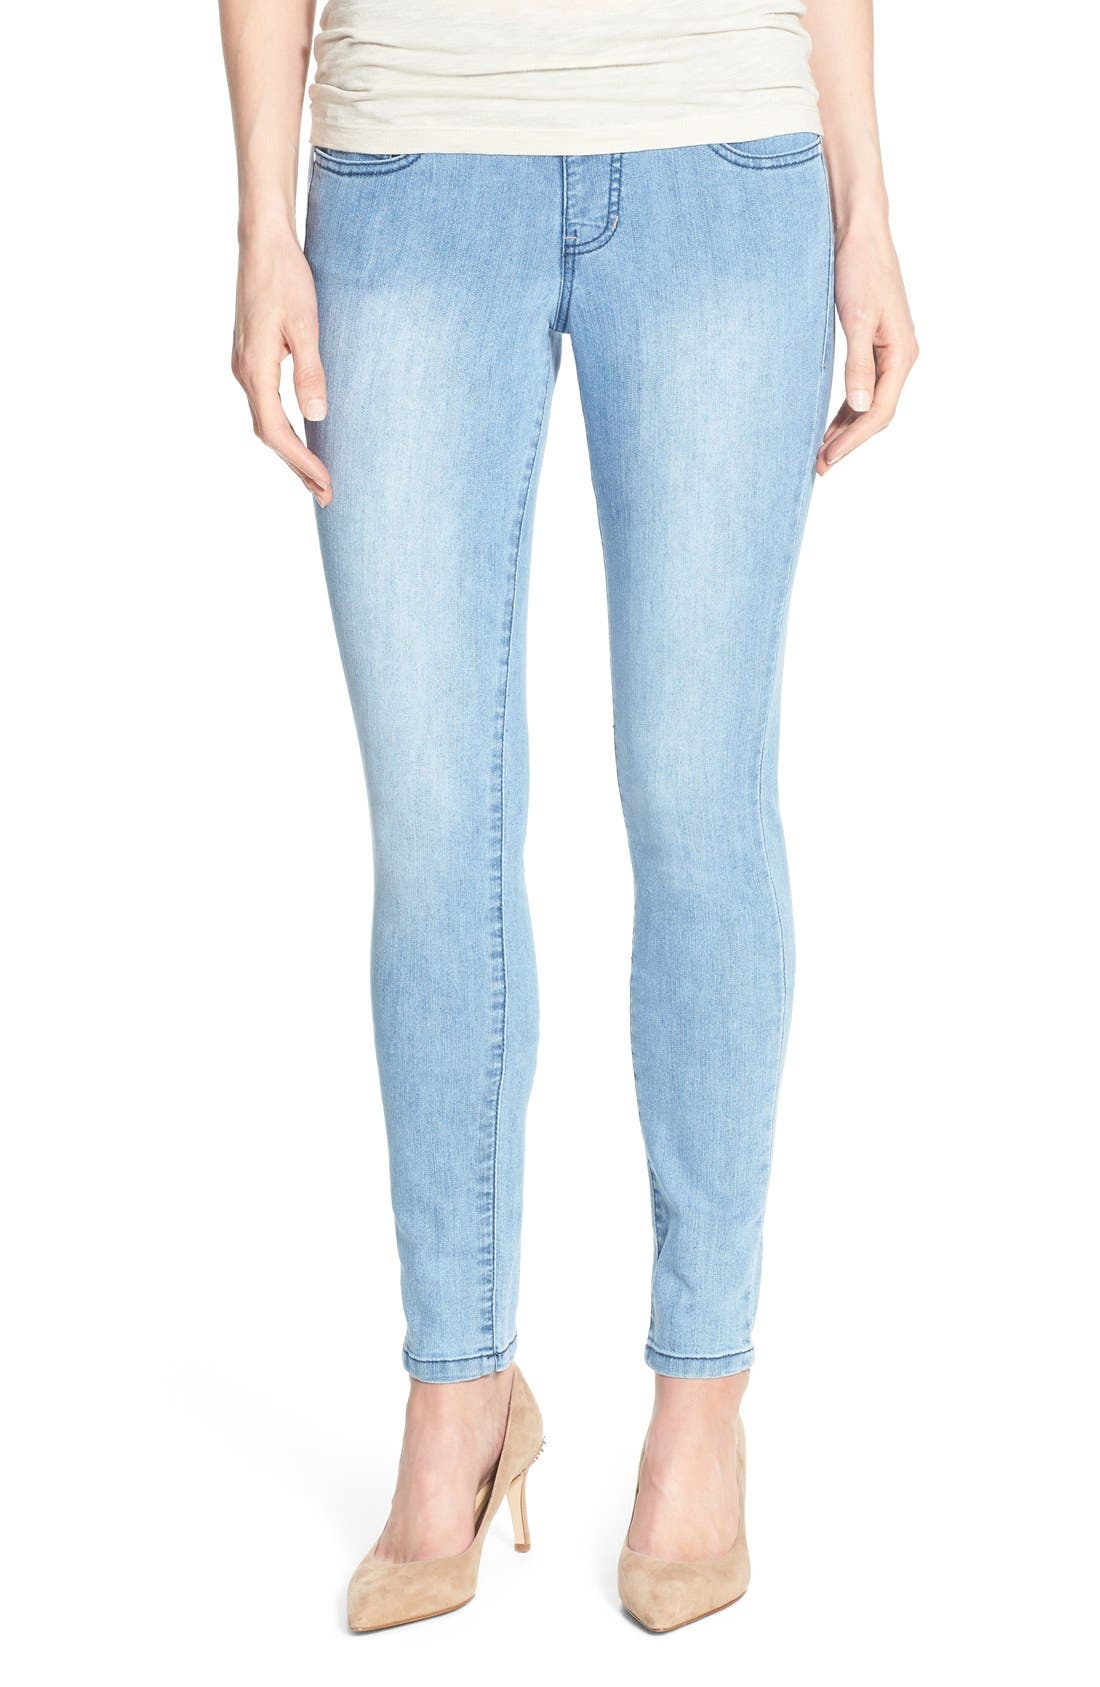 Alternate Image 1 Selected - Jag Jeans 'Nora' Pull-On Stretch Skinny Jeans (Southern Sky)